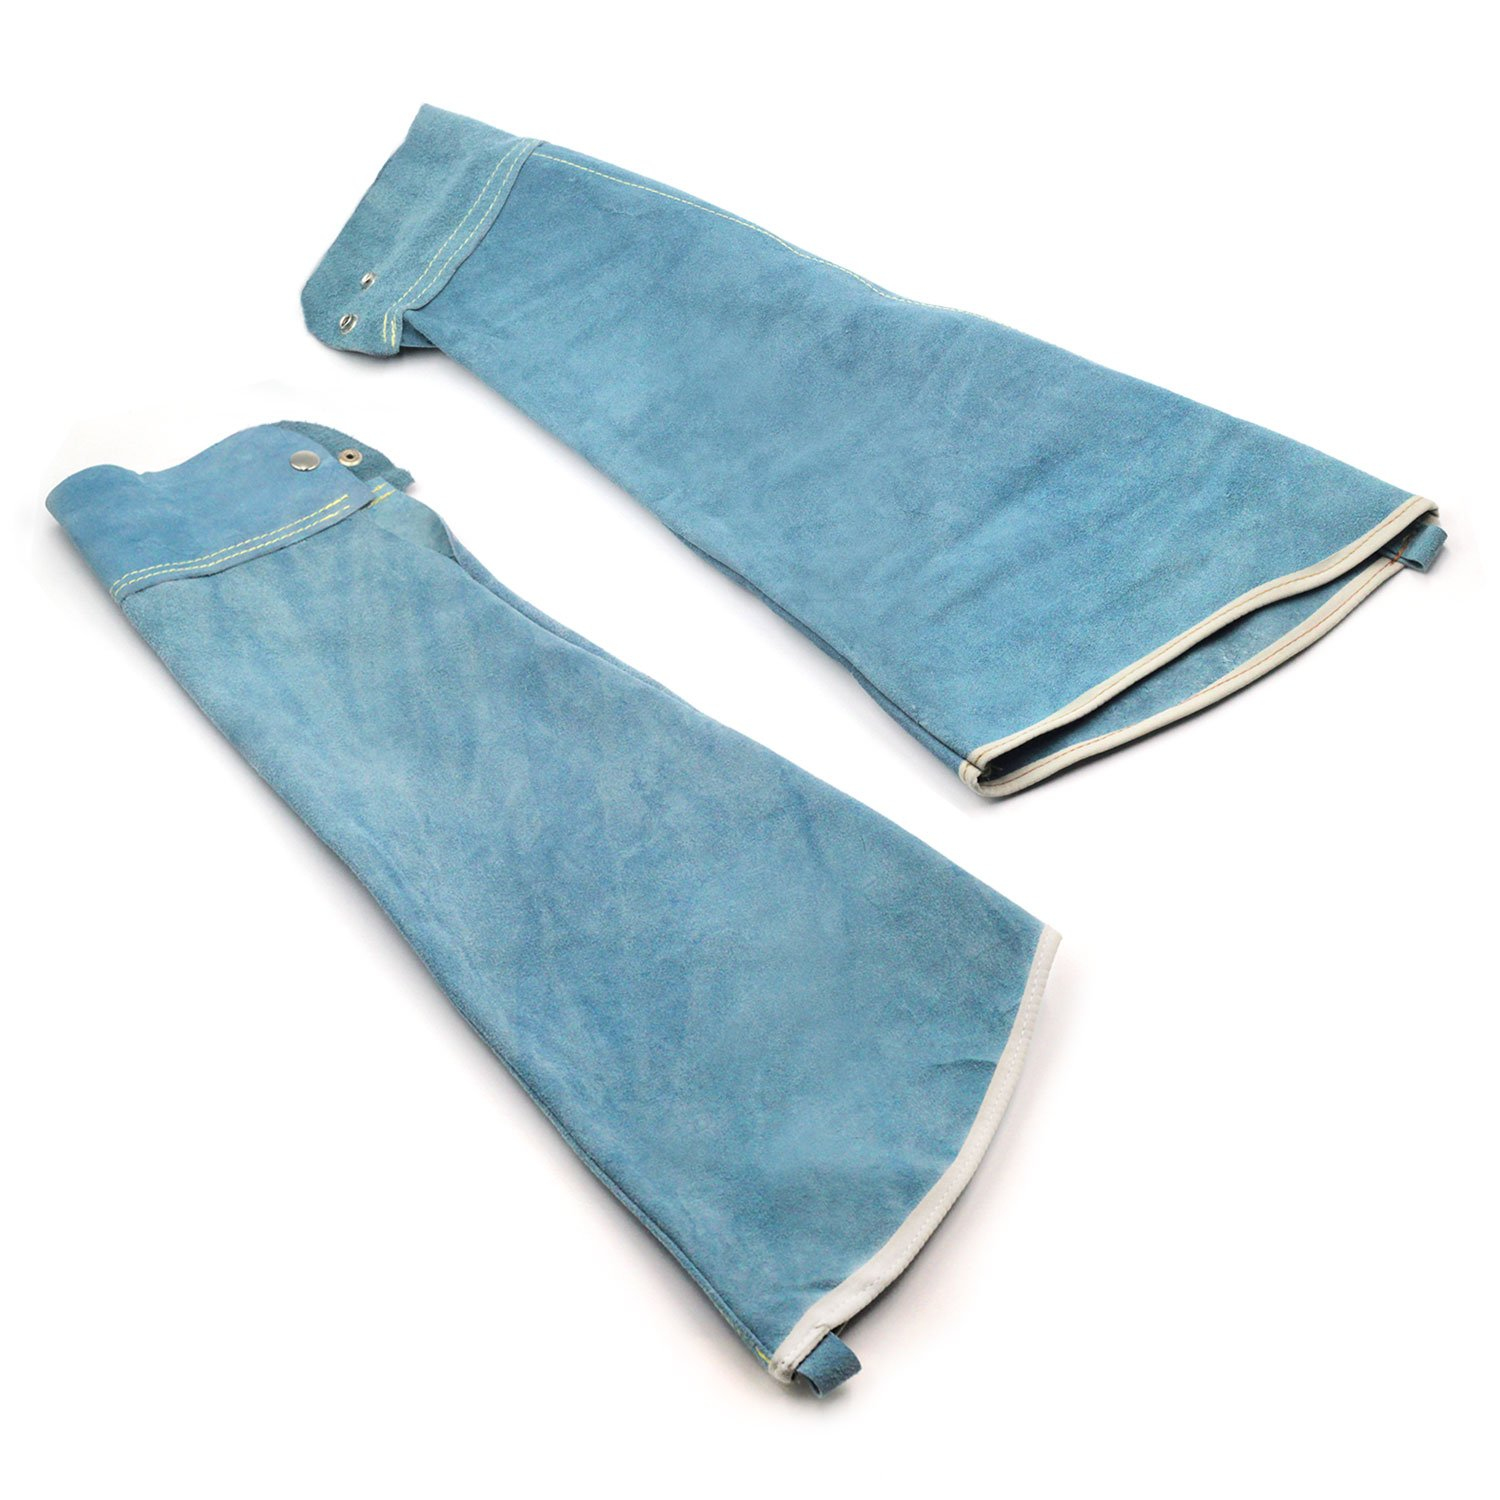 Heat Resistant Welding Sleeves,Leather Sleeves for welding, Button closure,Spark Resistant Protection,1 Pair (blue)